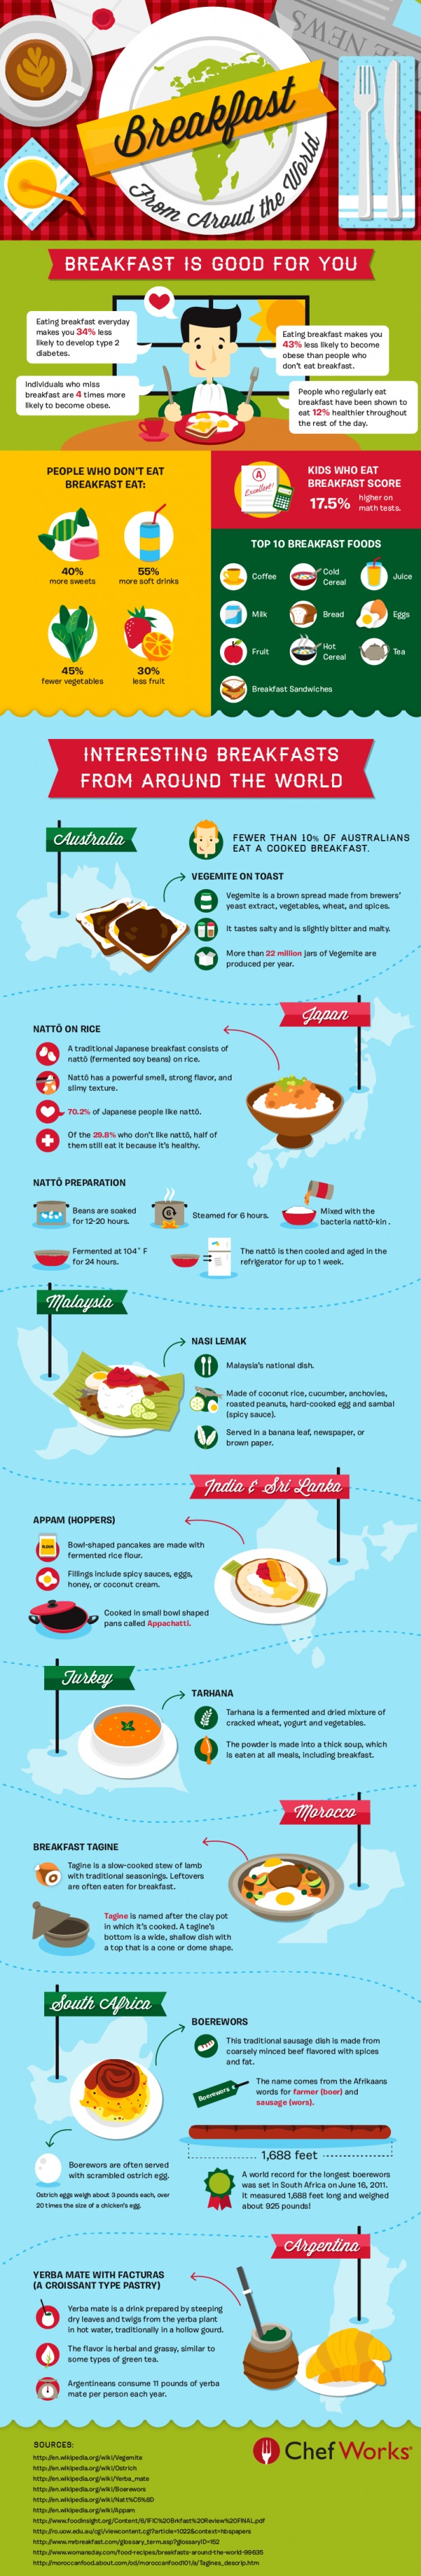 Infographic for breakfast around the world for Fun facts about countries around the world